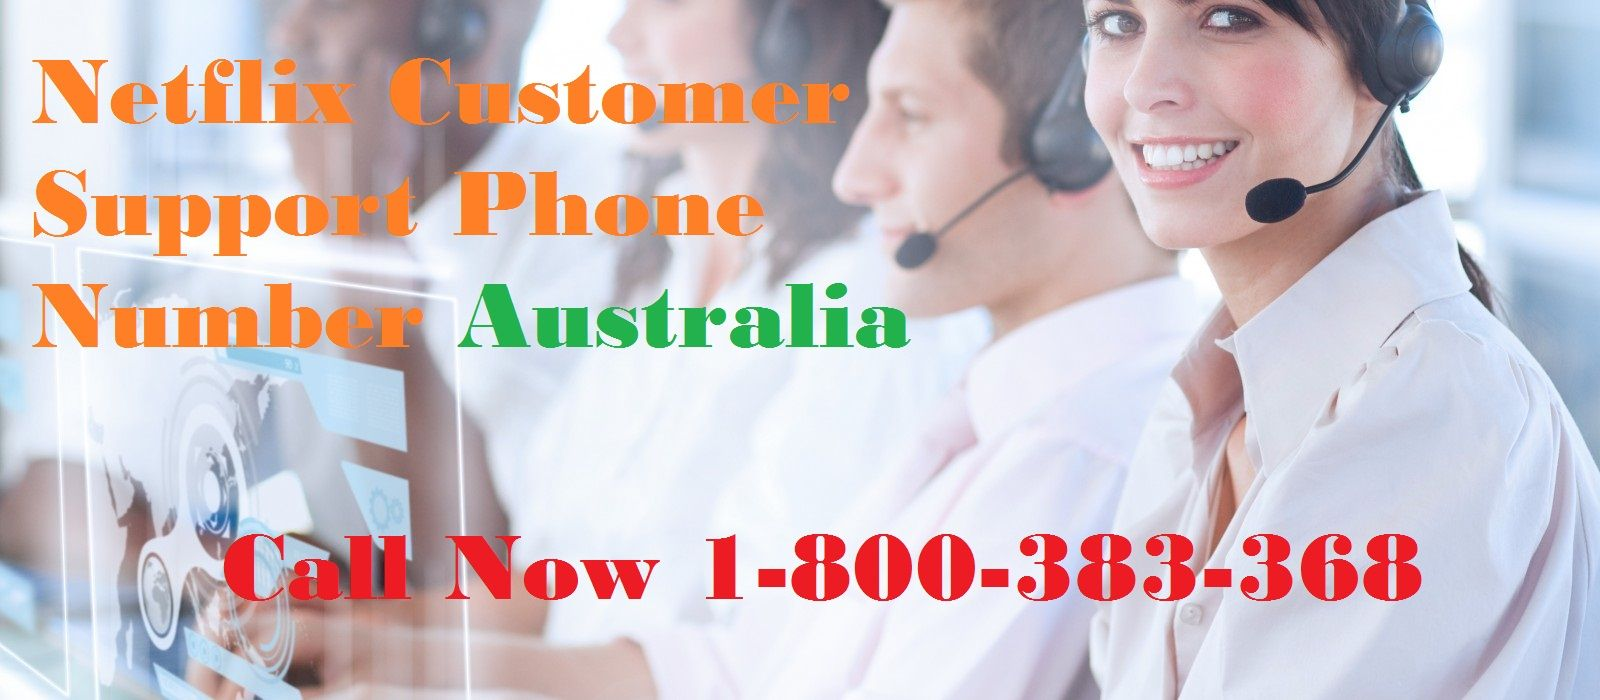 Netflix Contact 1800383368 Phone Number Australia For